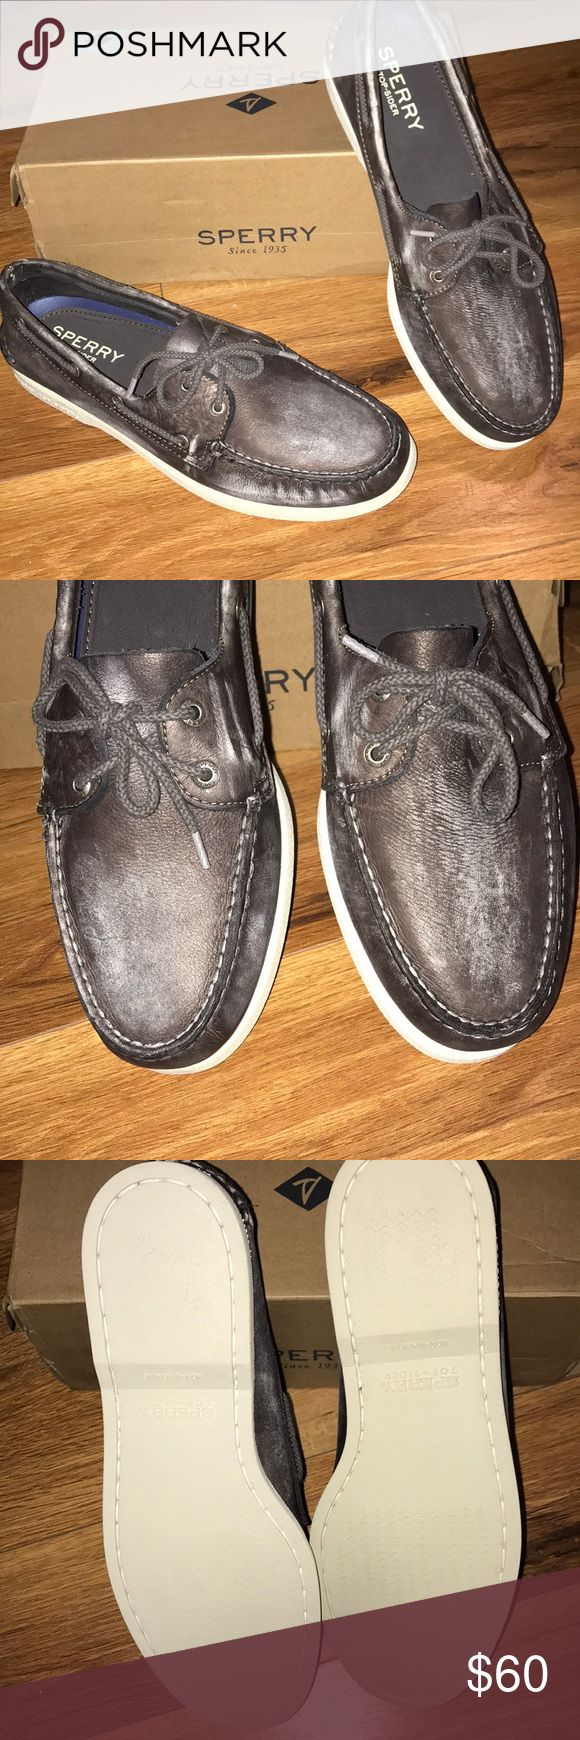 New! Sperry Top-Sider! New with box! Men's Sperry top sider. In Color wash gray. Size 12.  leather.   Never worn! Perfect for a great Christmas gift! Box comes with box is slightly damaged from store but still good. Sperry Top-Sider Shoes